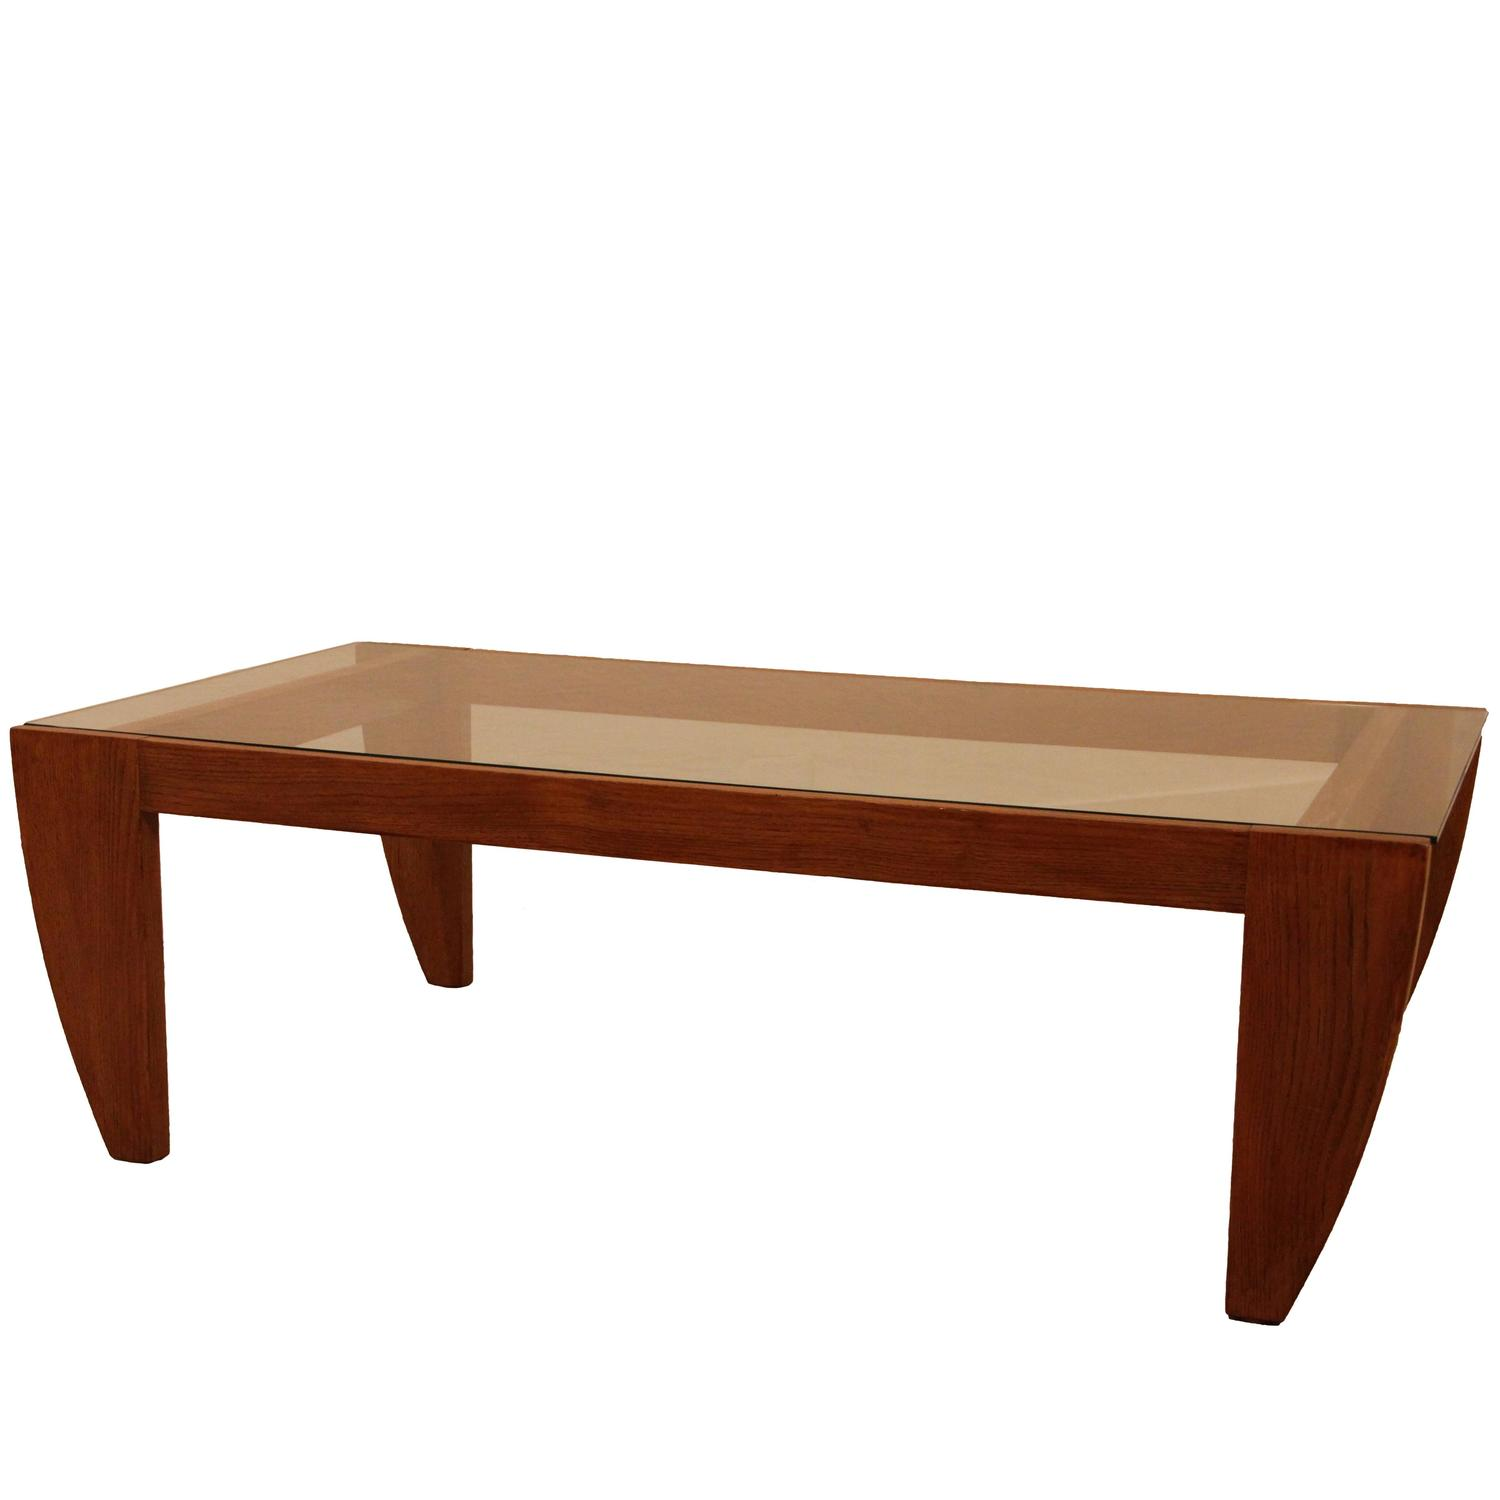 French Coffee Table 1950 At 1stdibs